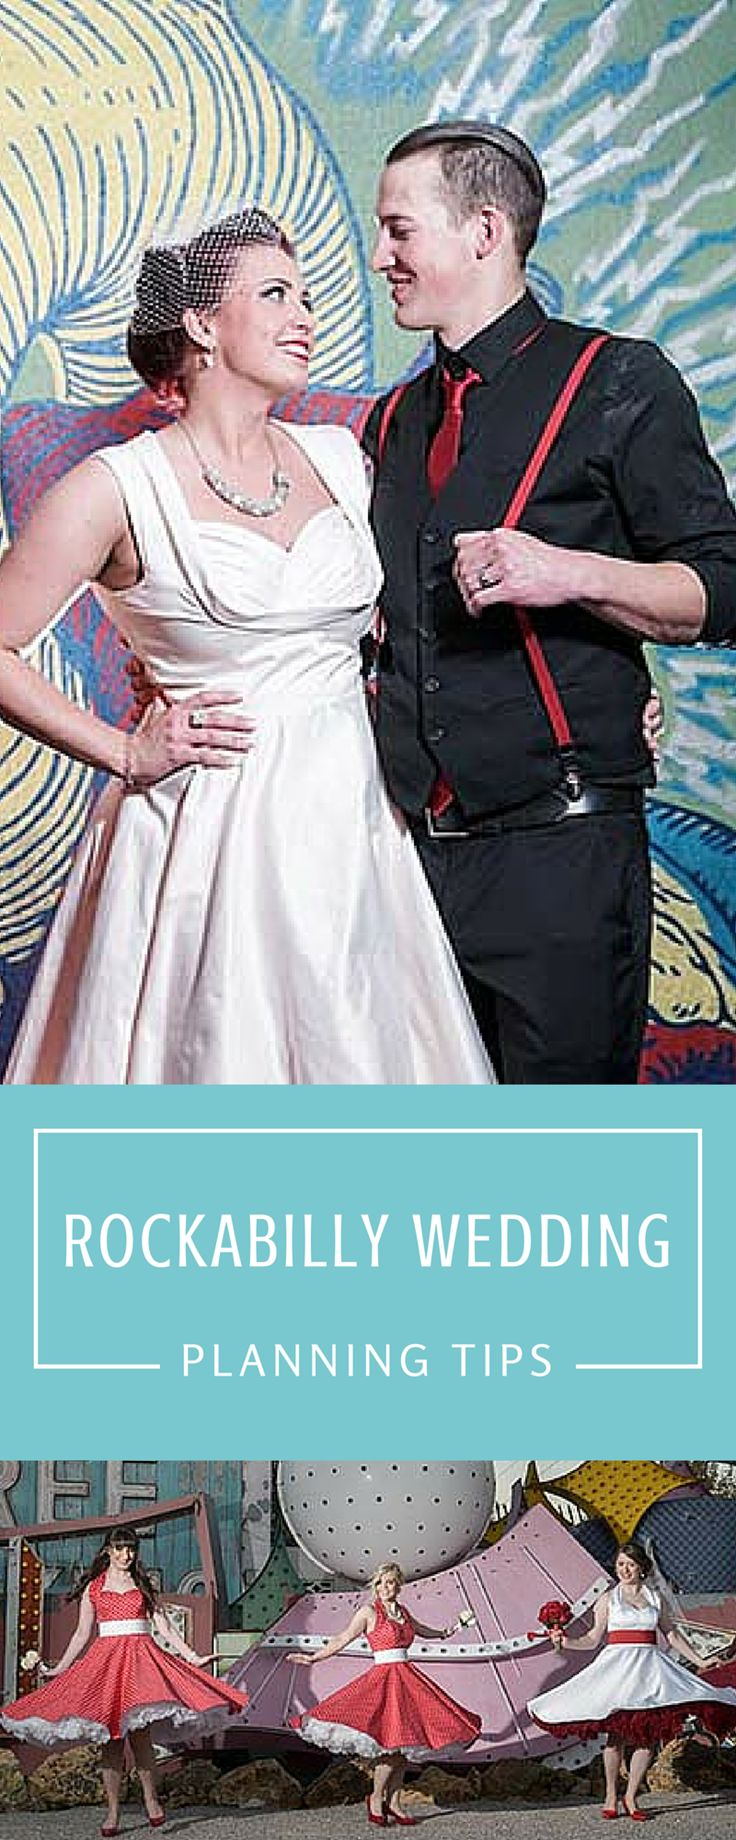 Viva Las Vegas! Rockabilly Wedding Planning Tips for a fun retro and vintage inspired wedding.